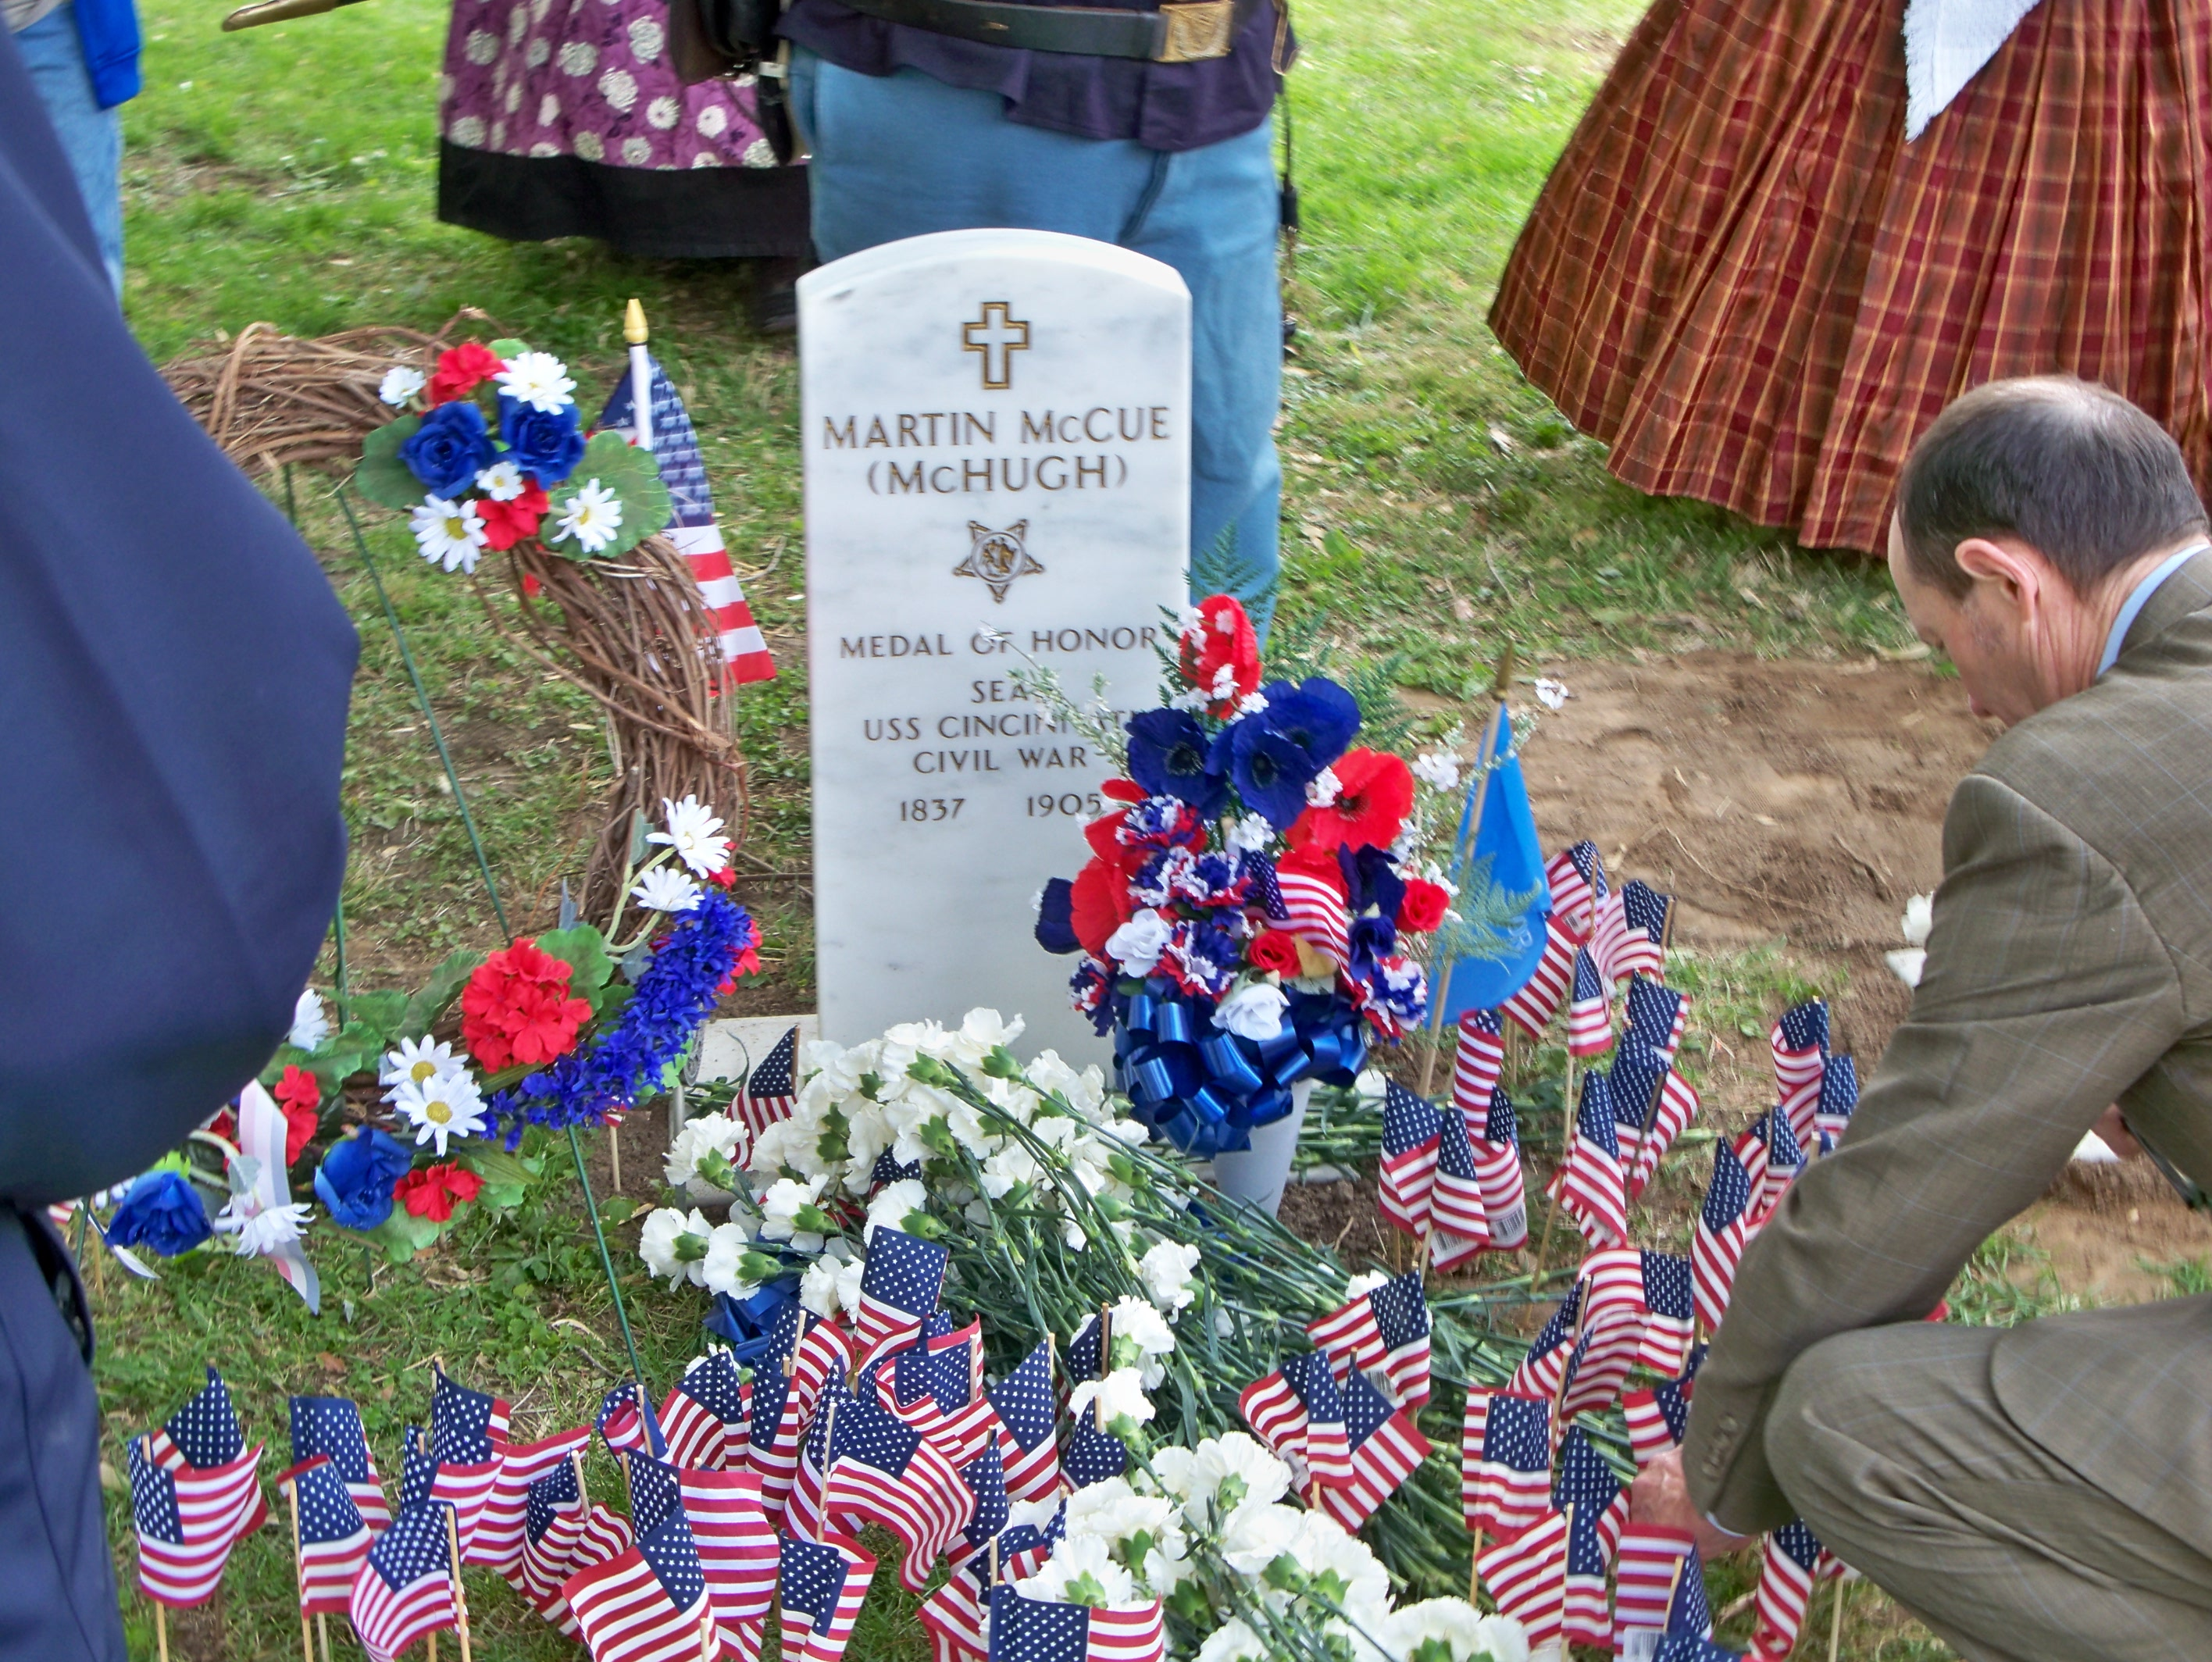 The Marker for Congressional Medal of Honor Recipient Martin McHugh (Photograph: Paula Hurst)